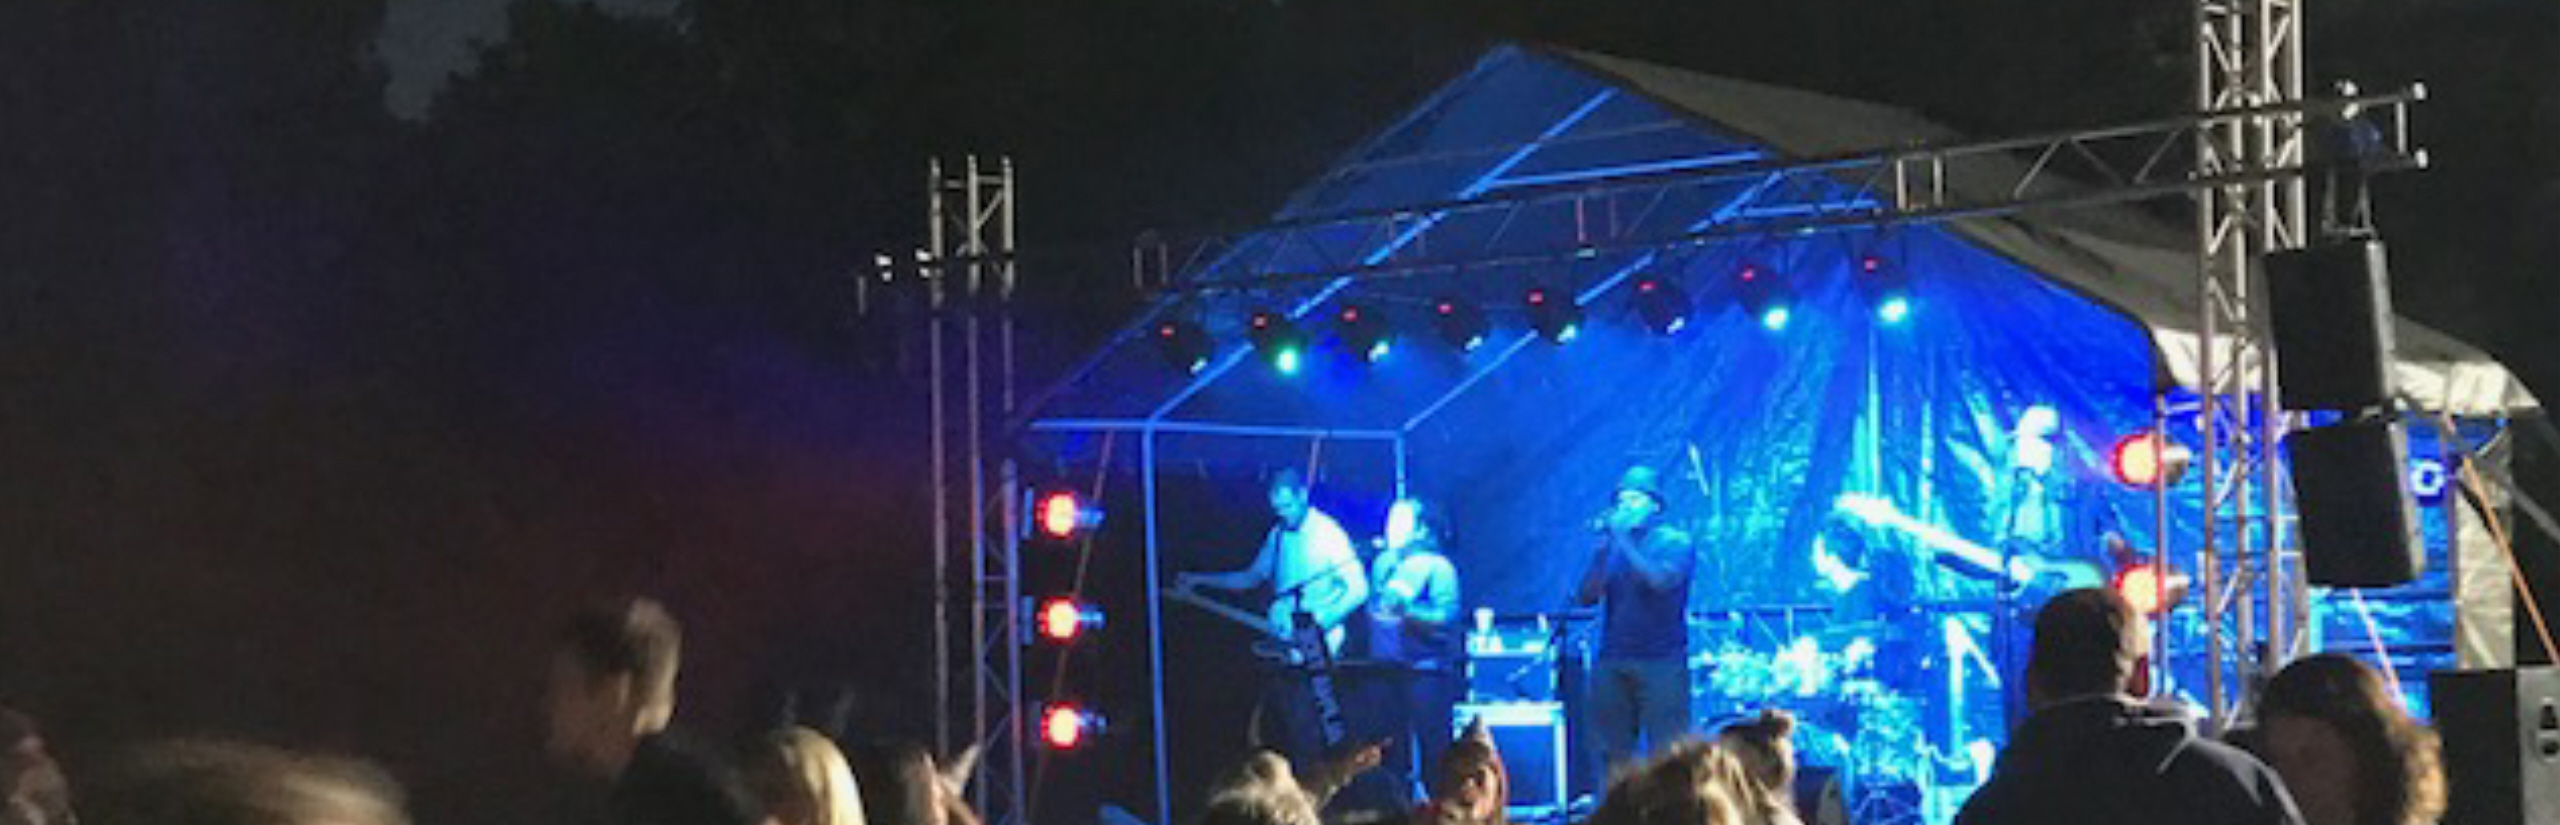 Stage Hire Exeter - Indoor and Outdoor Stage rental Devon Exmouth Dawlish Teignmouth